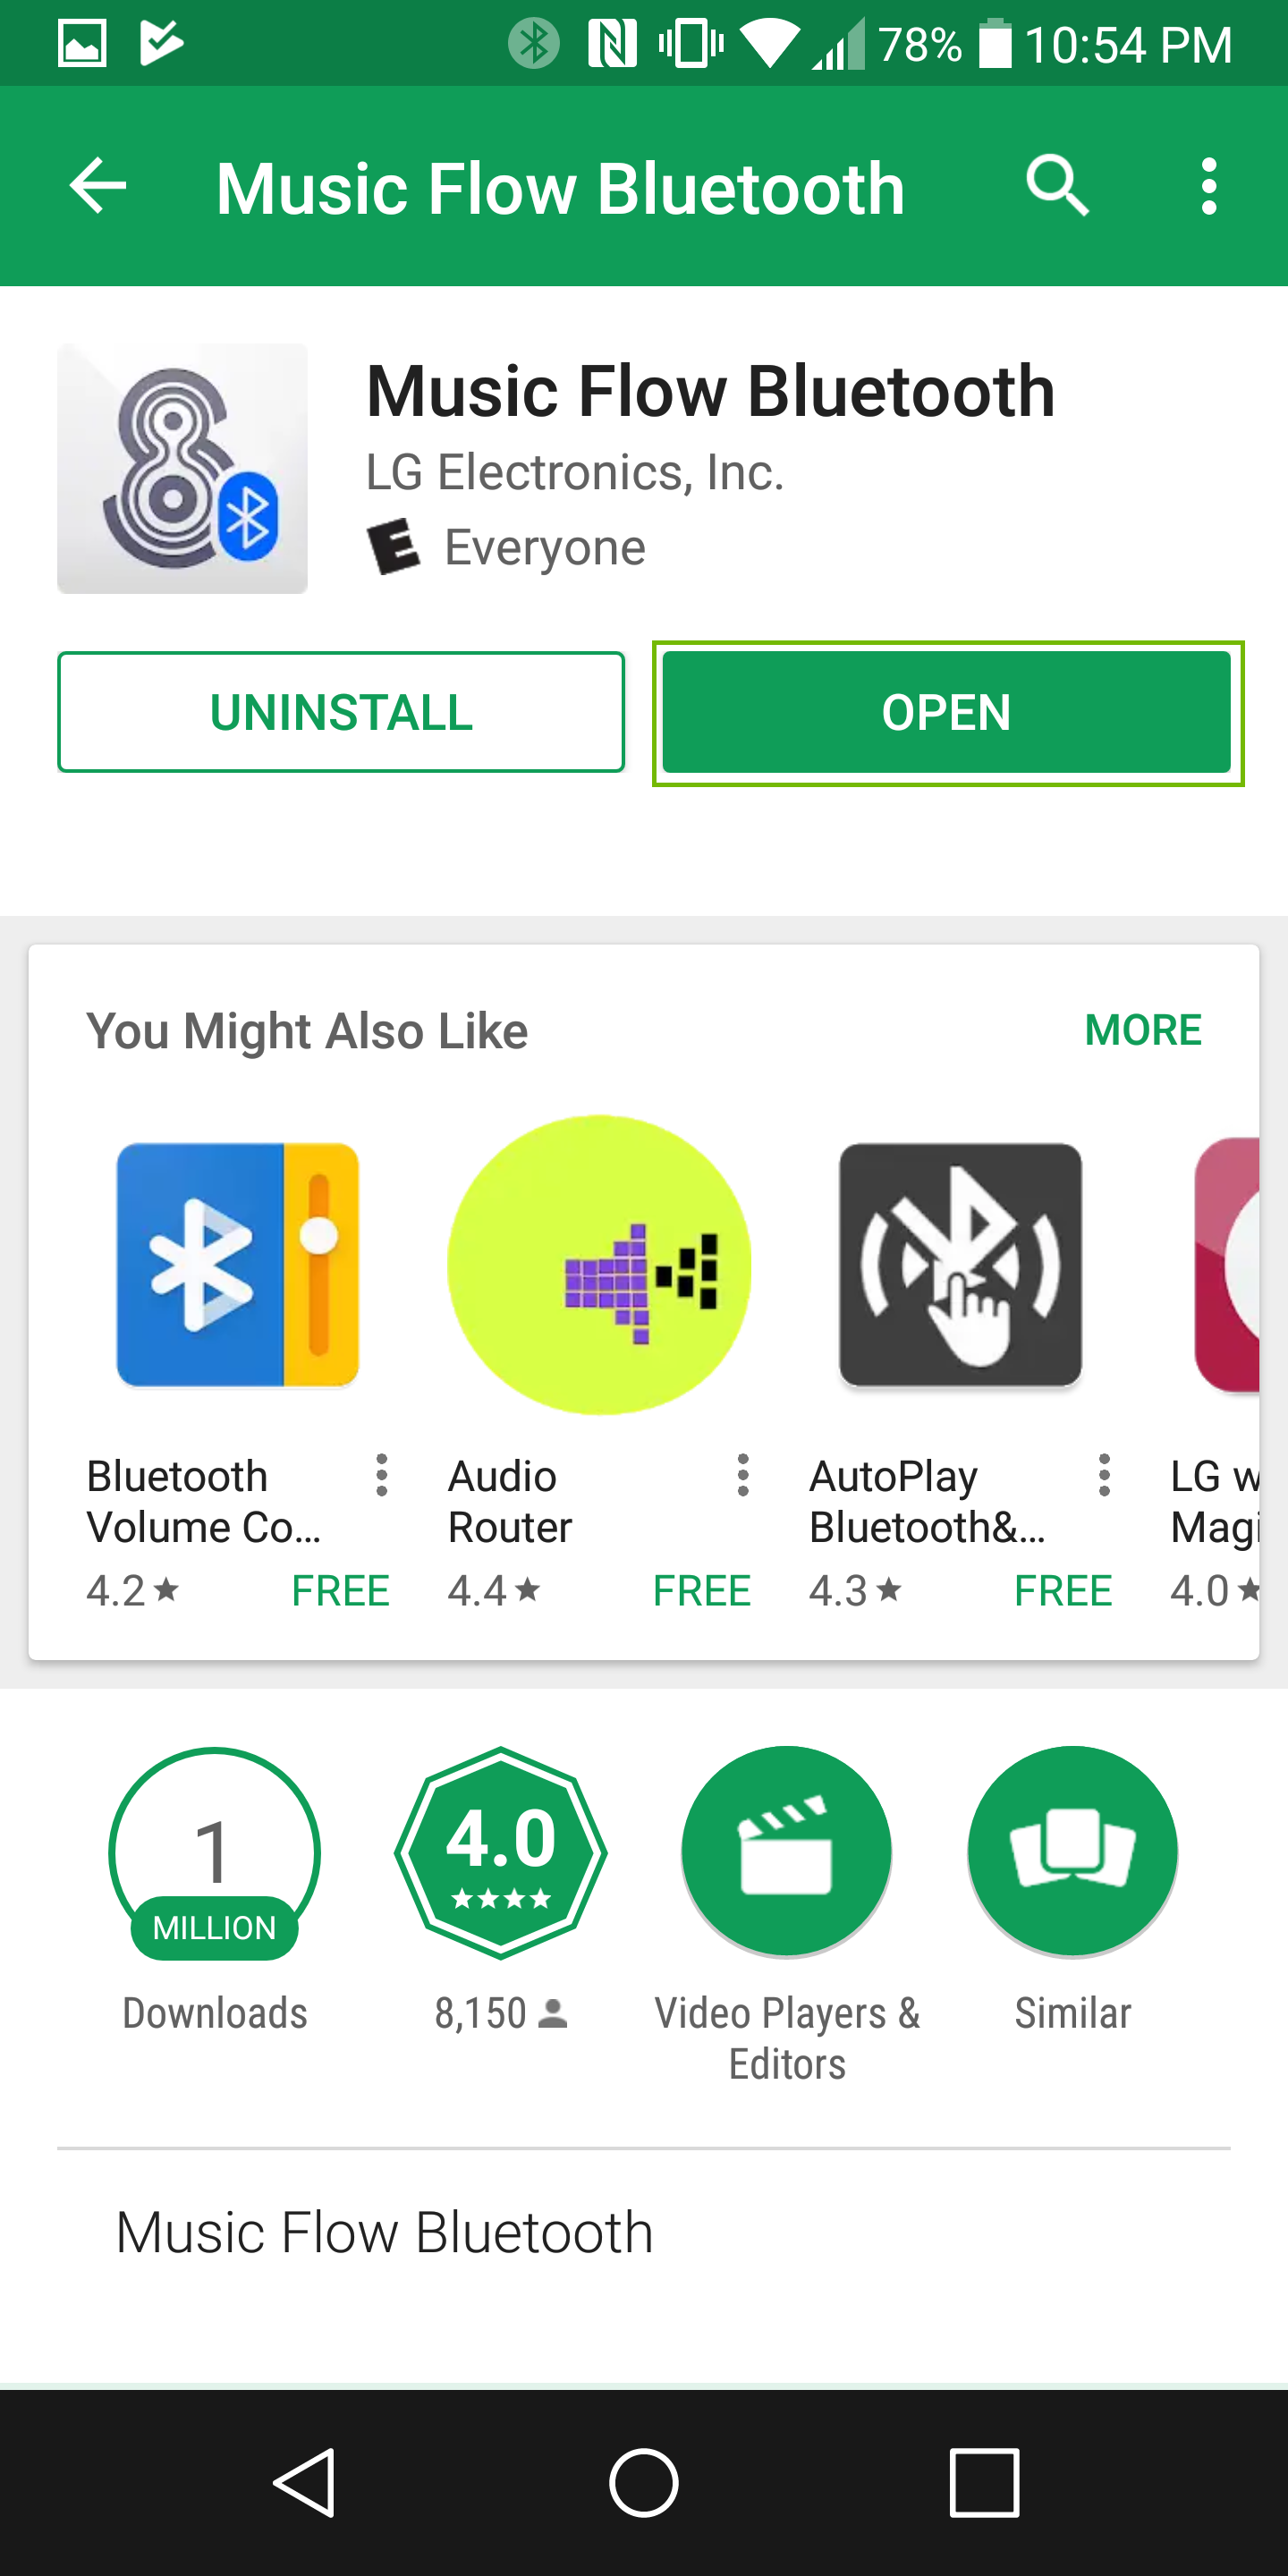 screenshot of the music flow bluetooth app install screen with open highlighted